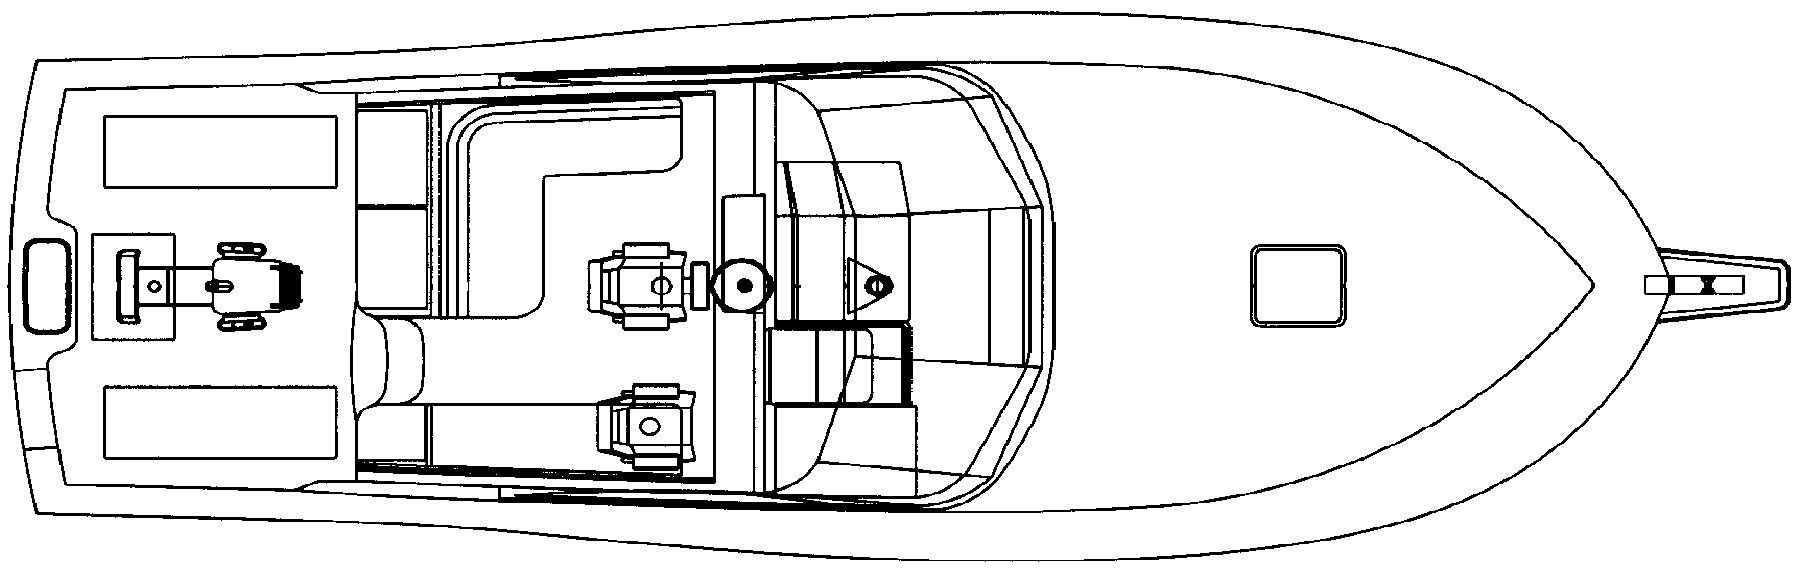 40 Express Floor Plan 2